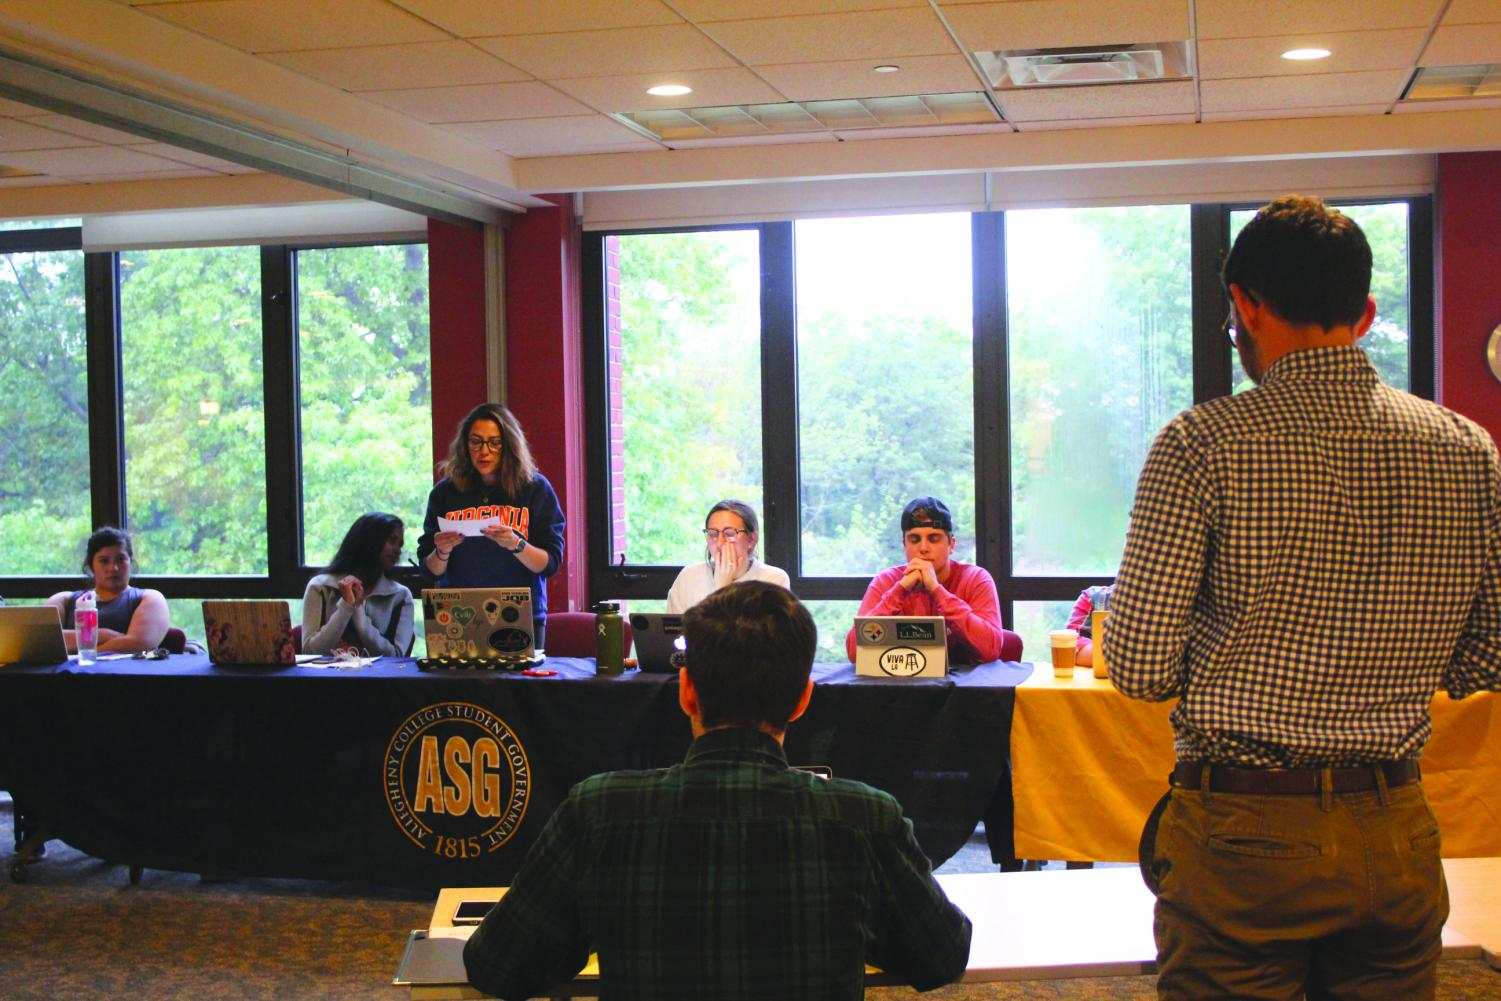 Allegheny Student Government held its meeting on Tuesday, Sept. 11, 2018. ASG swore in class proxies and discussed the upcoming elections.